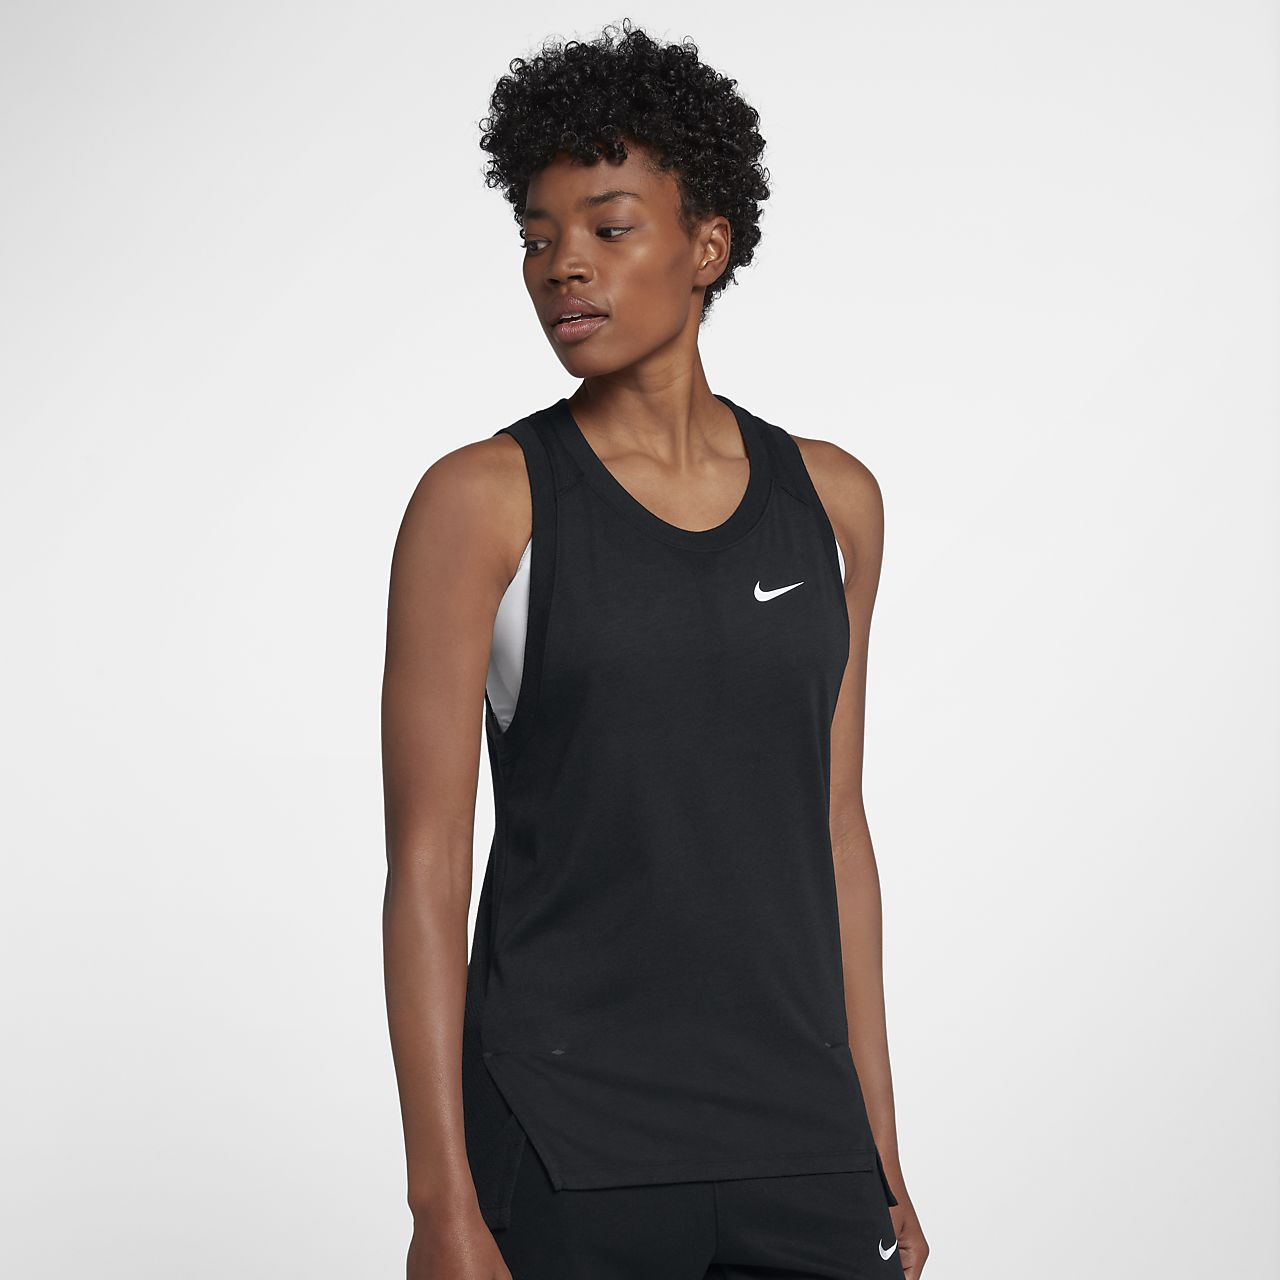 6eff37da Nike Dri-FIT Elite Women's Basketball Tank. Nike.com AU